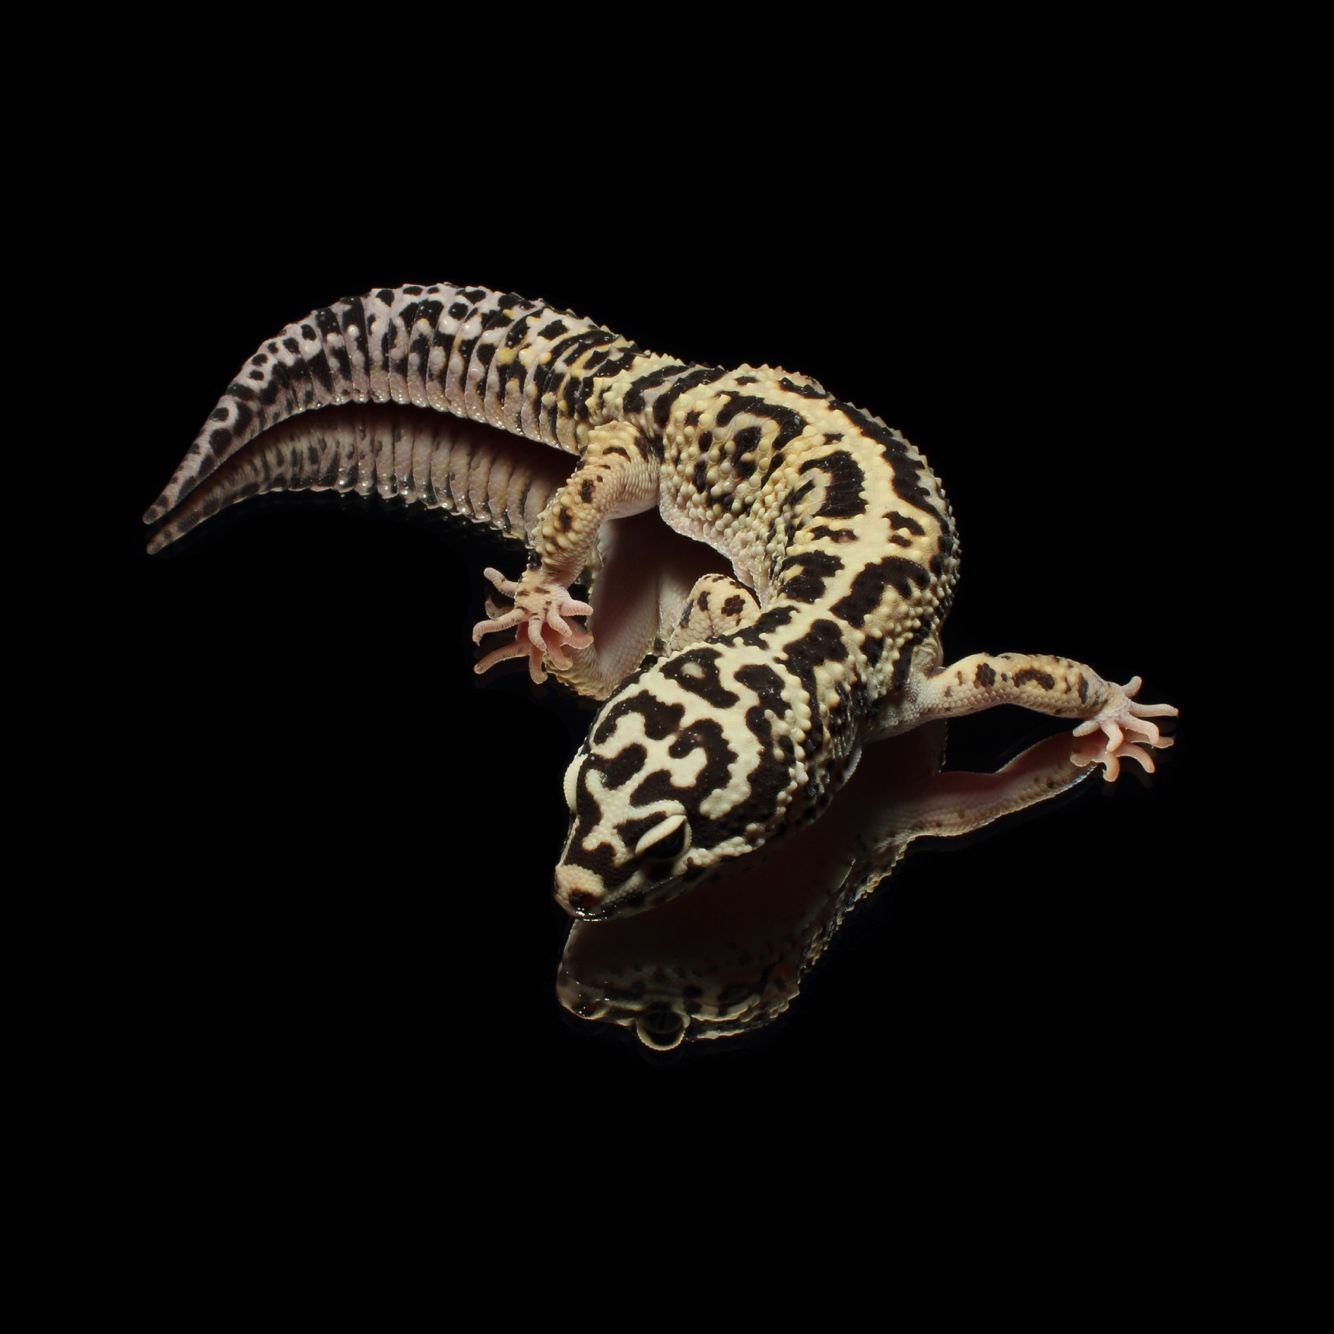 #Leopardgecko 'Texas' Lavender & Tangerine Jungle Bandit het. Striped by Ron Tremper